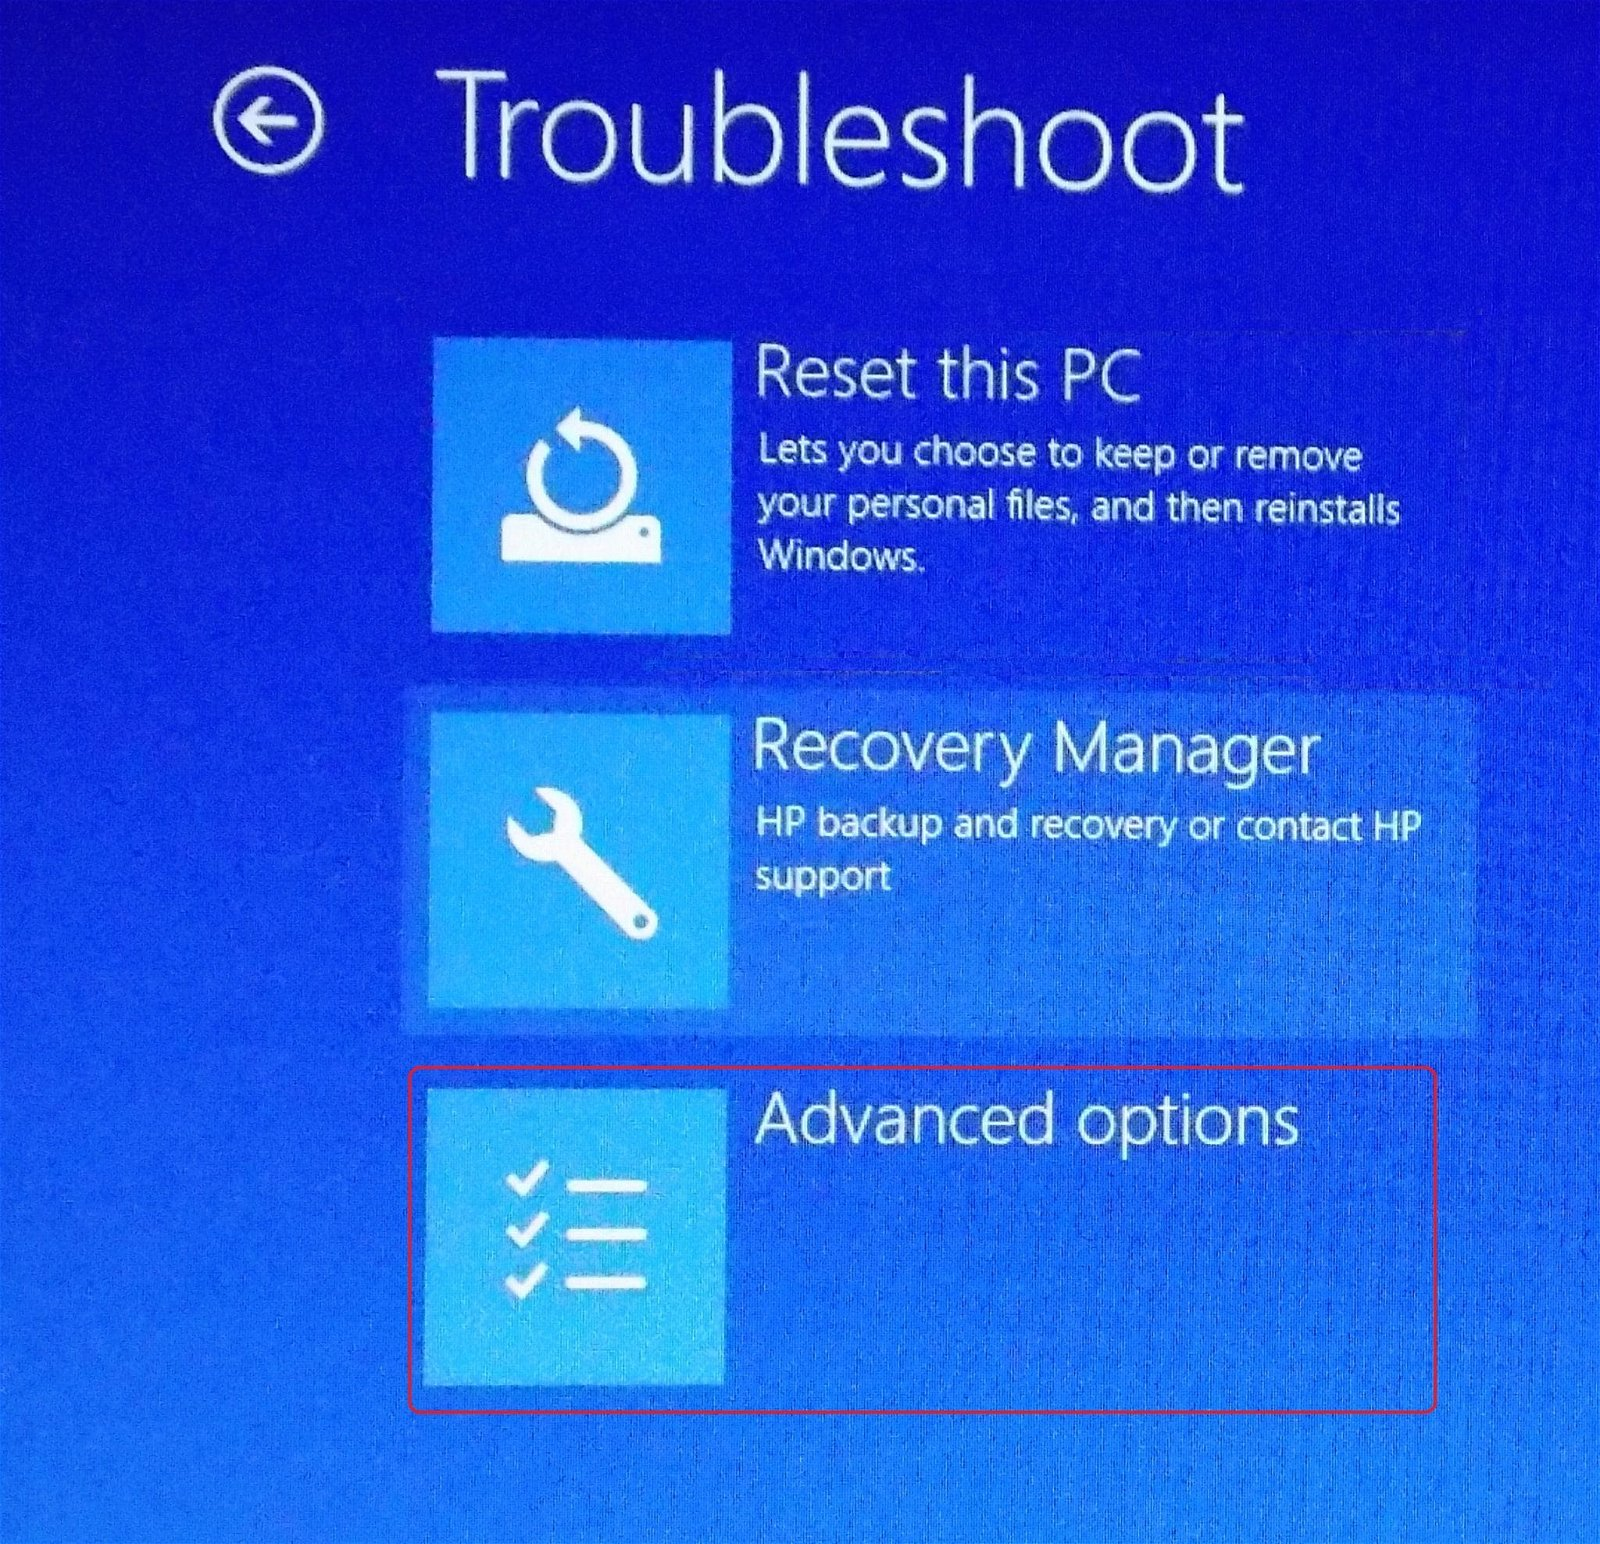 advanced options on troubleshoot menu